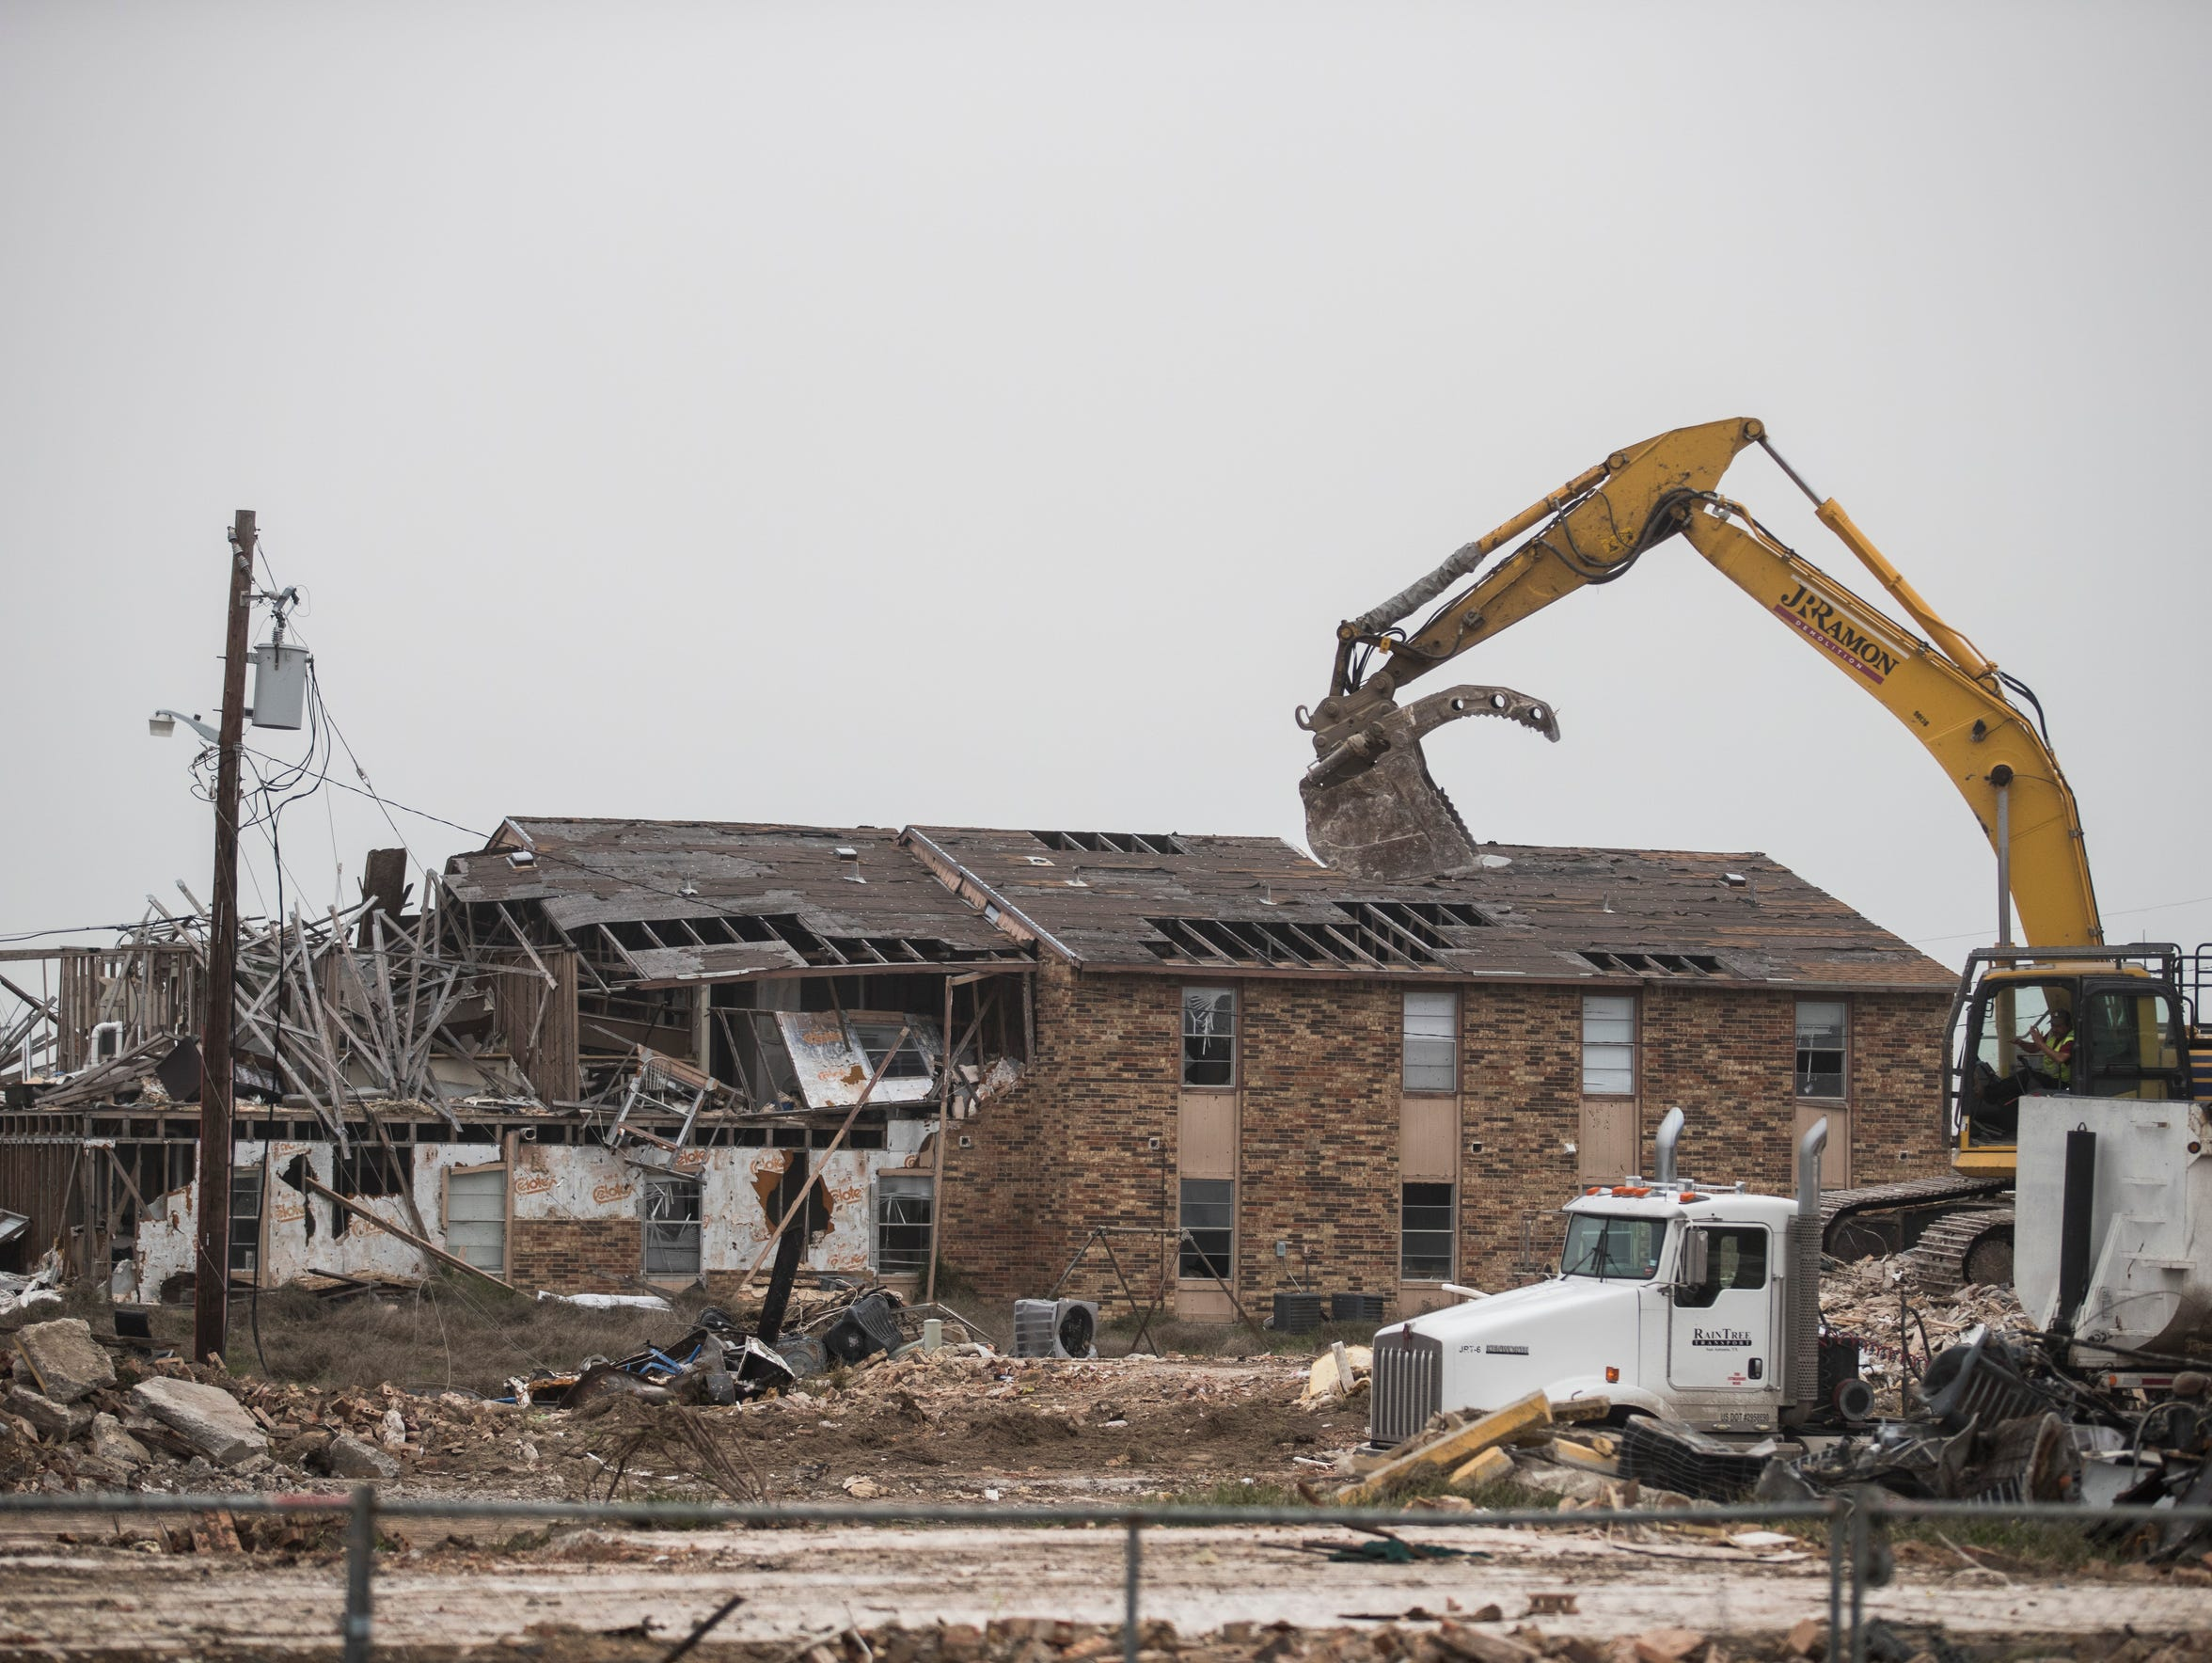 Contractors work to demolish an apartment complex on Tuesday Feb. 20, 2018 in Rockport. The building was severely damaged from Hurricane Harvey.